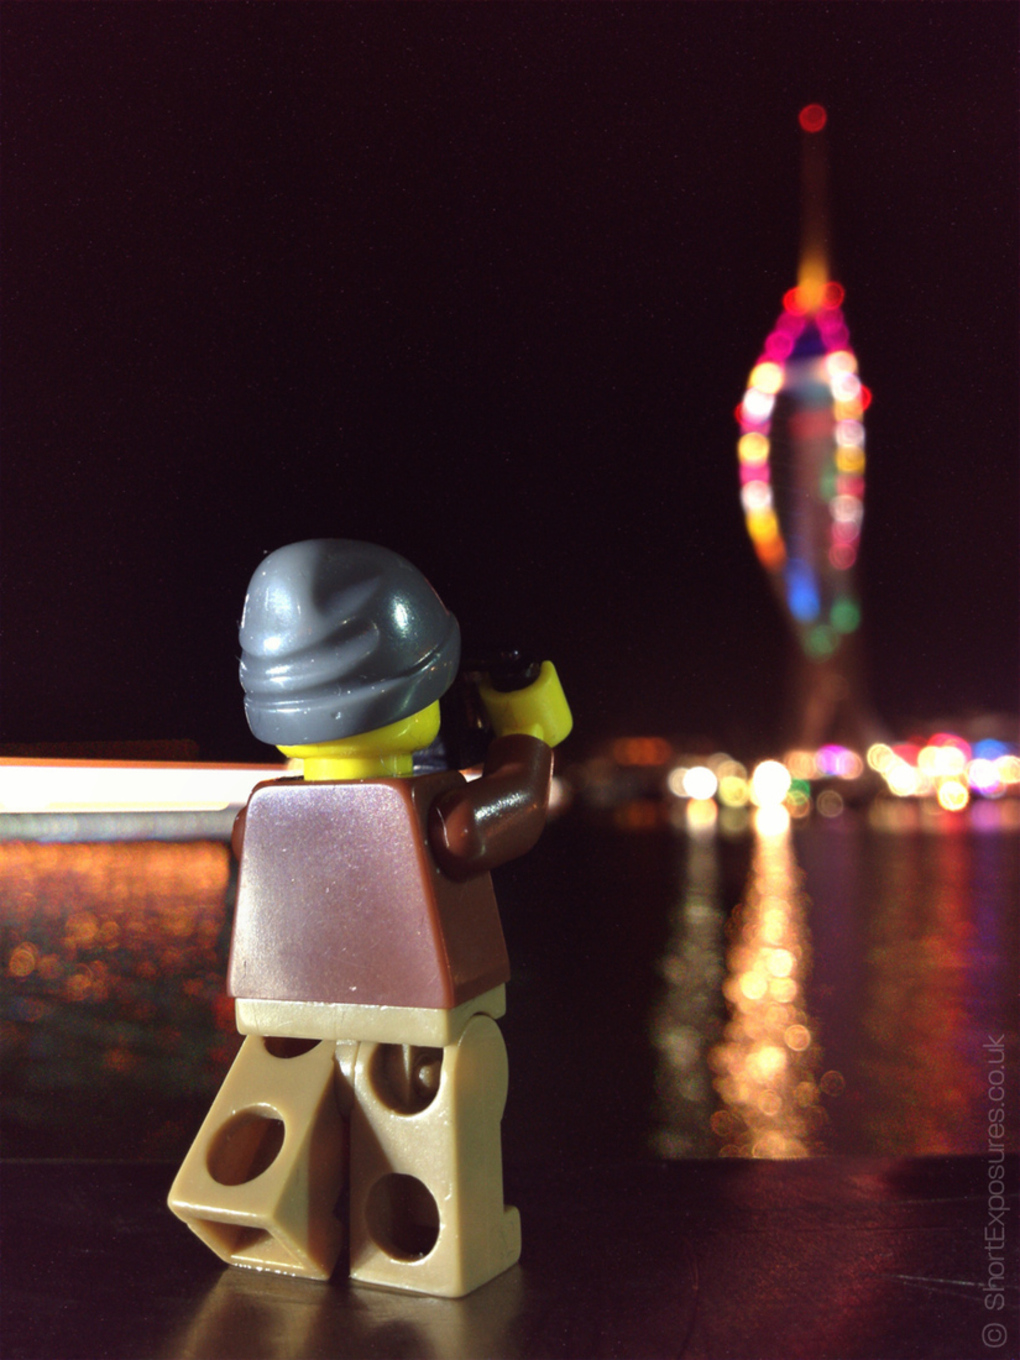 legography-andrew-whyte-11